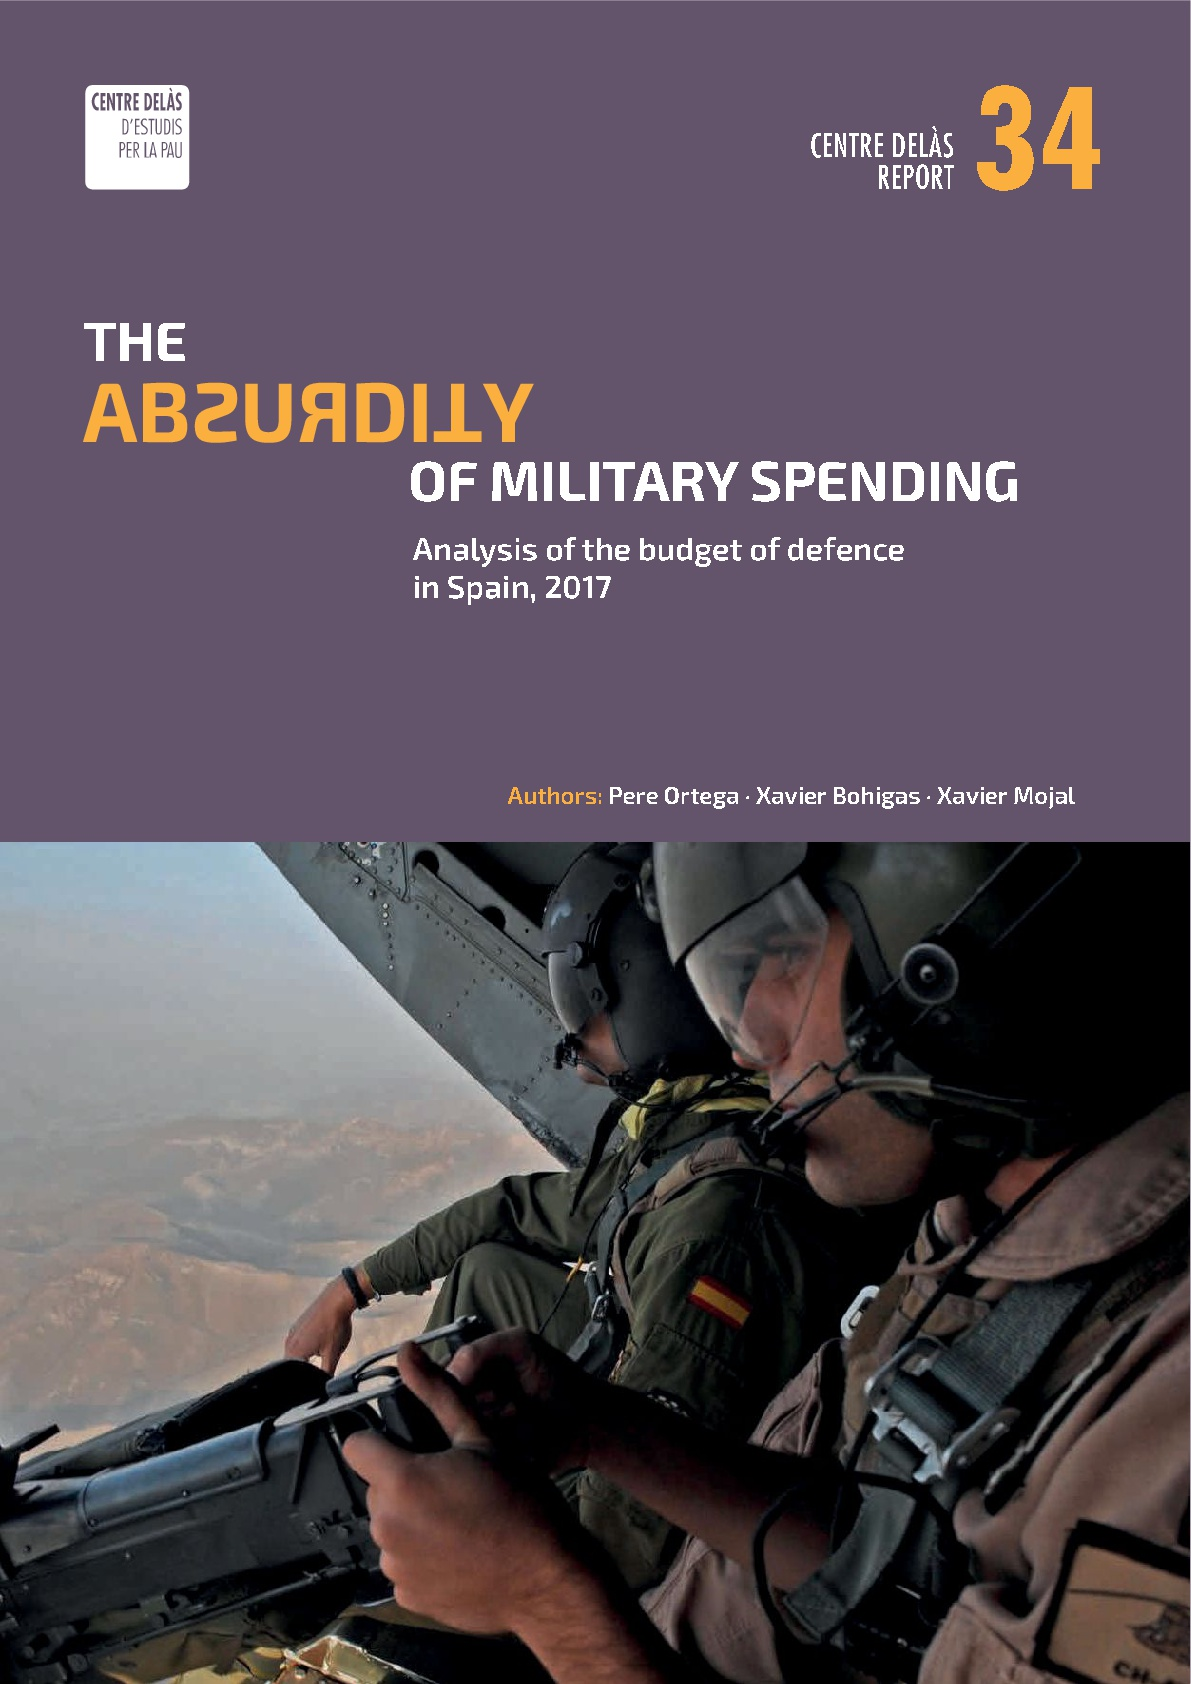 Report 34: The Absurdity of Military Spending: Analysis of the Budget of defence in Spain, 2017